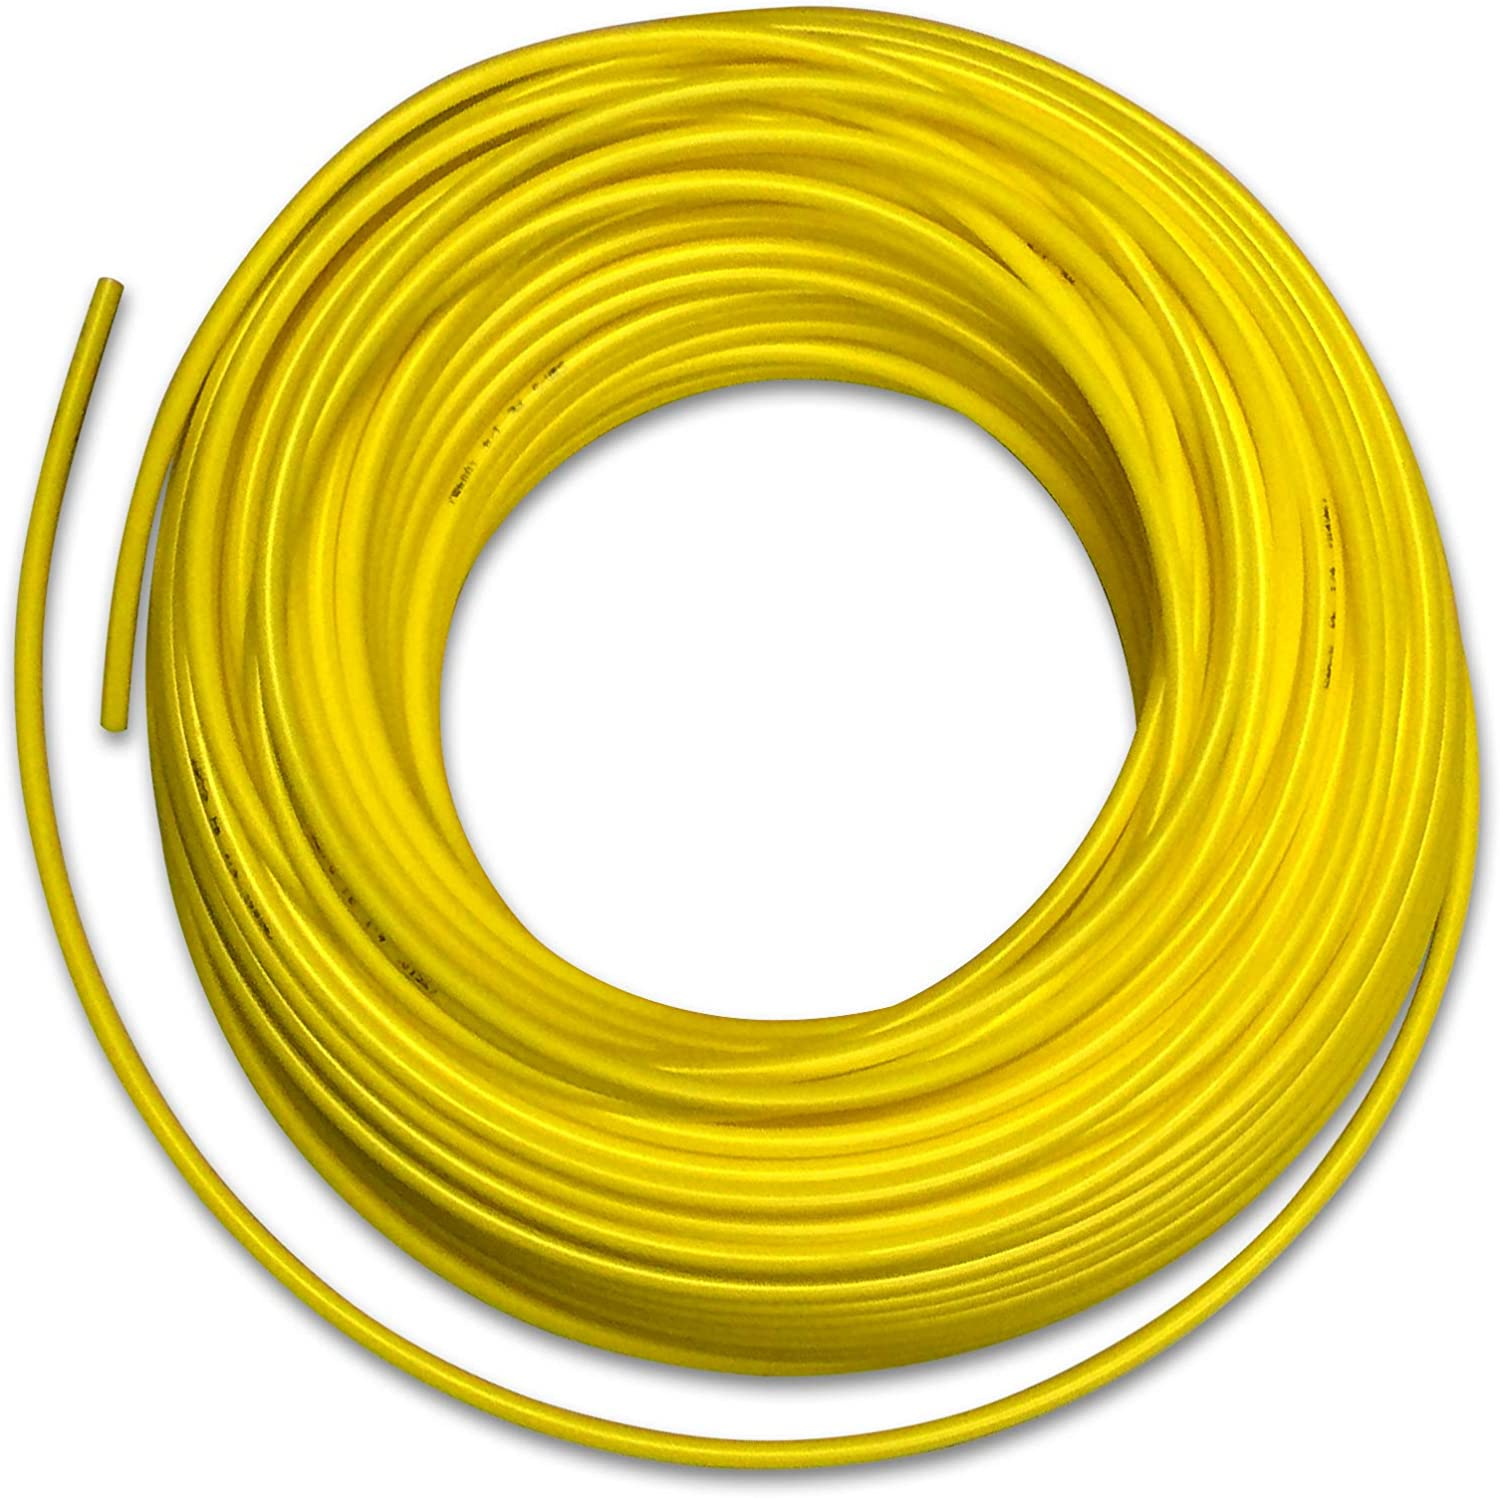 Food Grade 1/4 Inch Plastic Tubing for RO Water Filter System, Aquariums, Refrigerators, ECT; BPA free; Made from FDA compliant materials and meets NSF Standards and Regulations (10 Feet, Yellow)